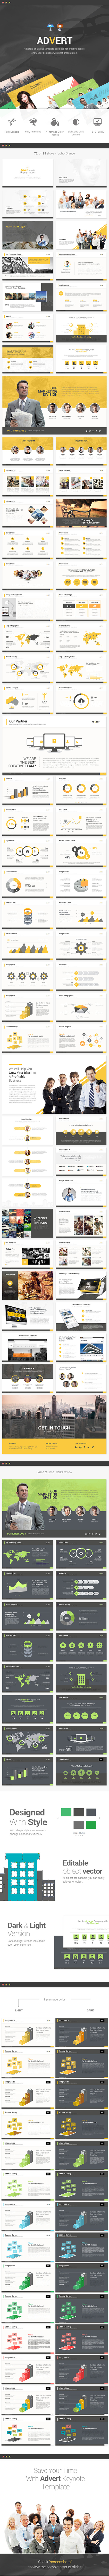 GraphicRiver Advert Keynote Presentation 10334152